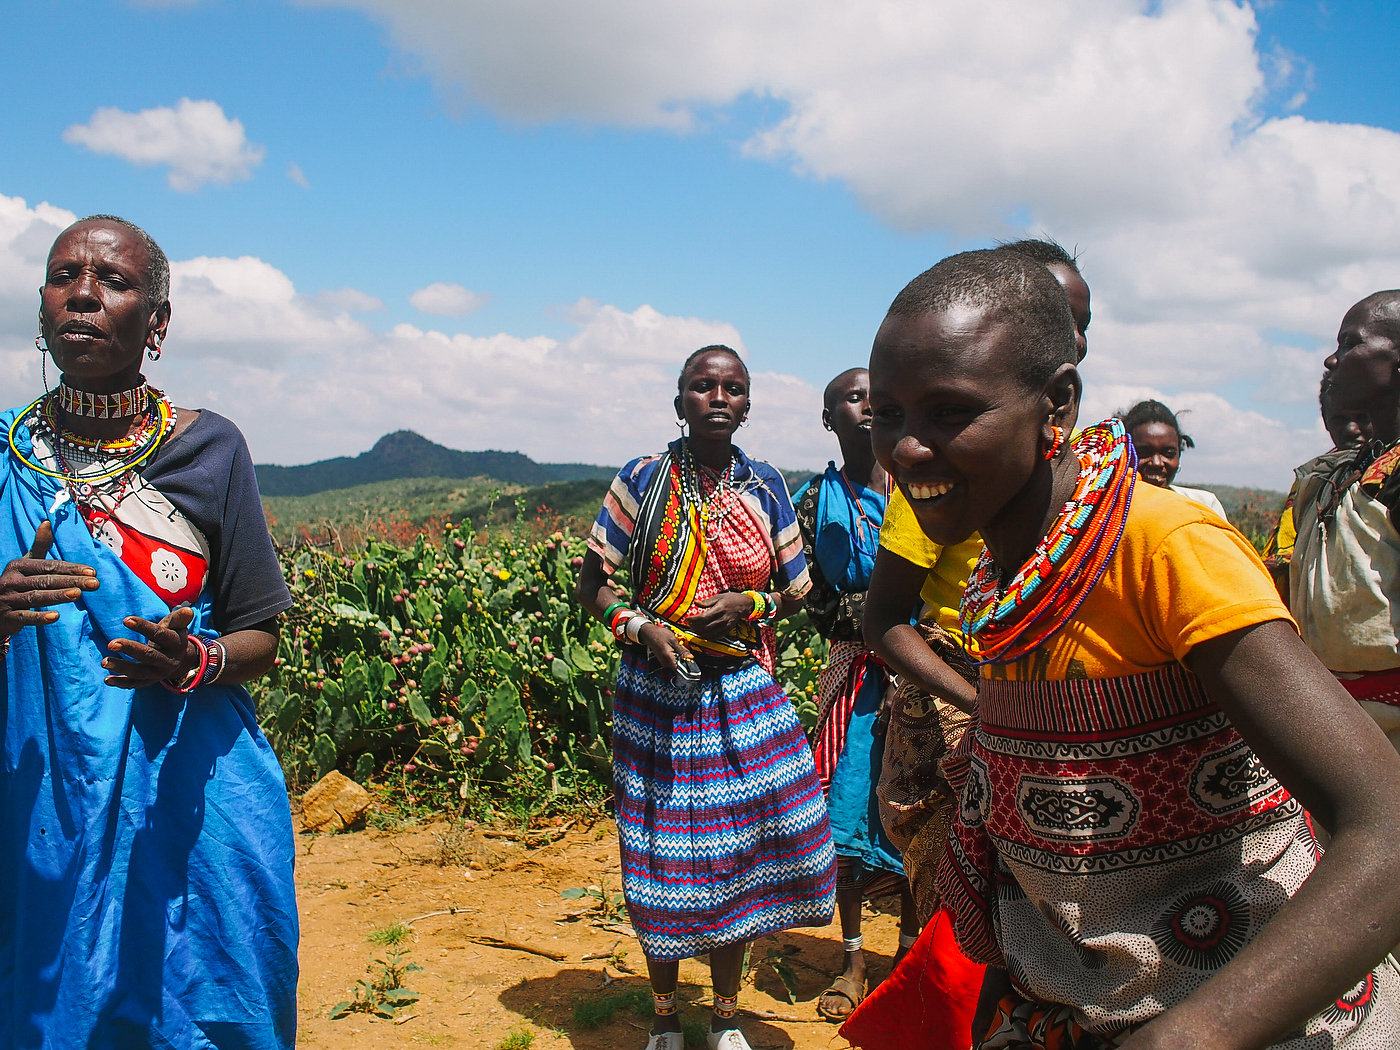 LUSH's Charity Pot helps Masai tribes